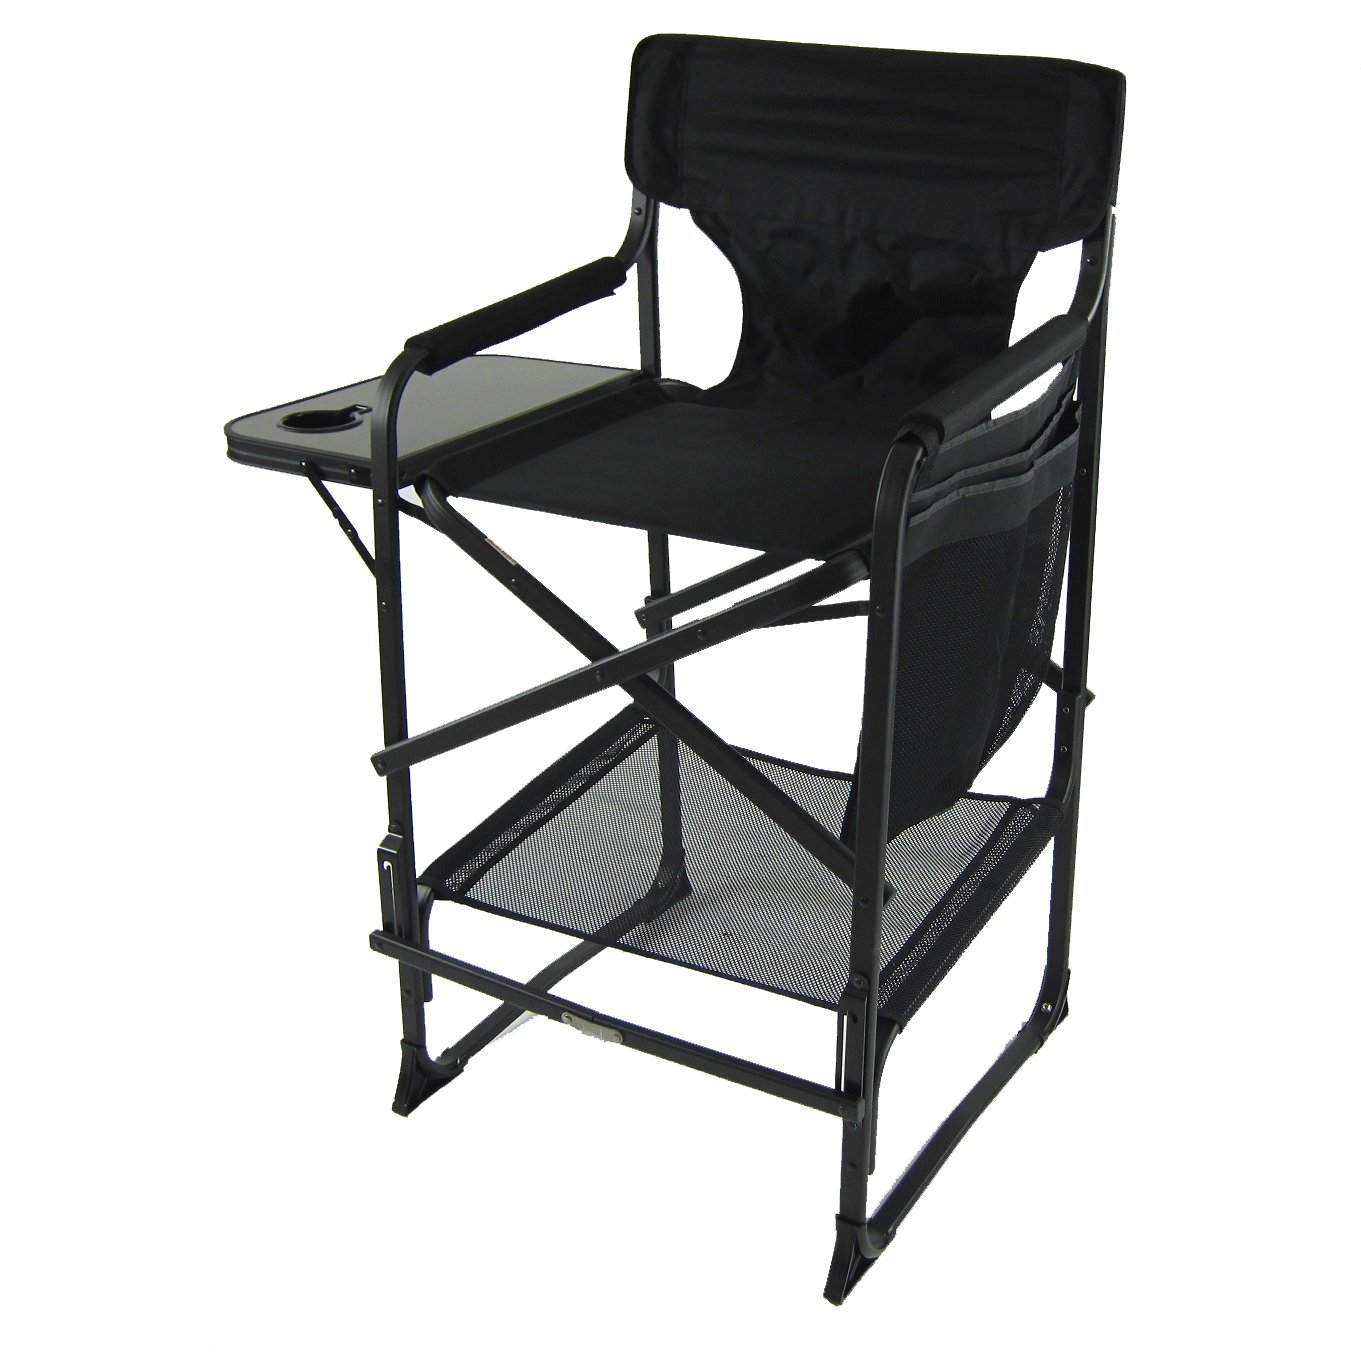 World Outdoor Products XL Tall Directors Chair with Adjustable, Automatic Footrest, Removable Back and a XL Side Table with Cup Holder, Dual-Pocket Side Bag and Storage Net.